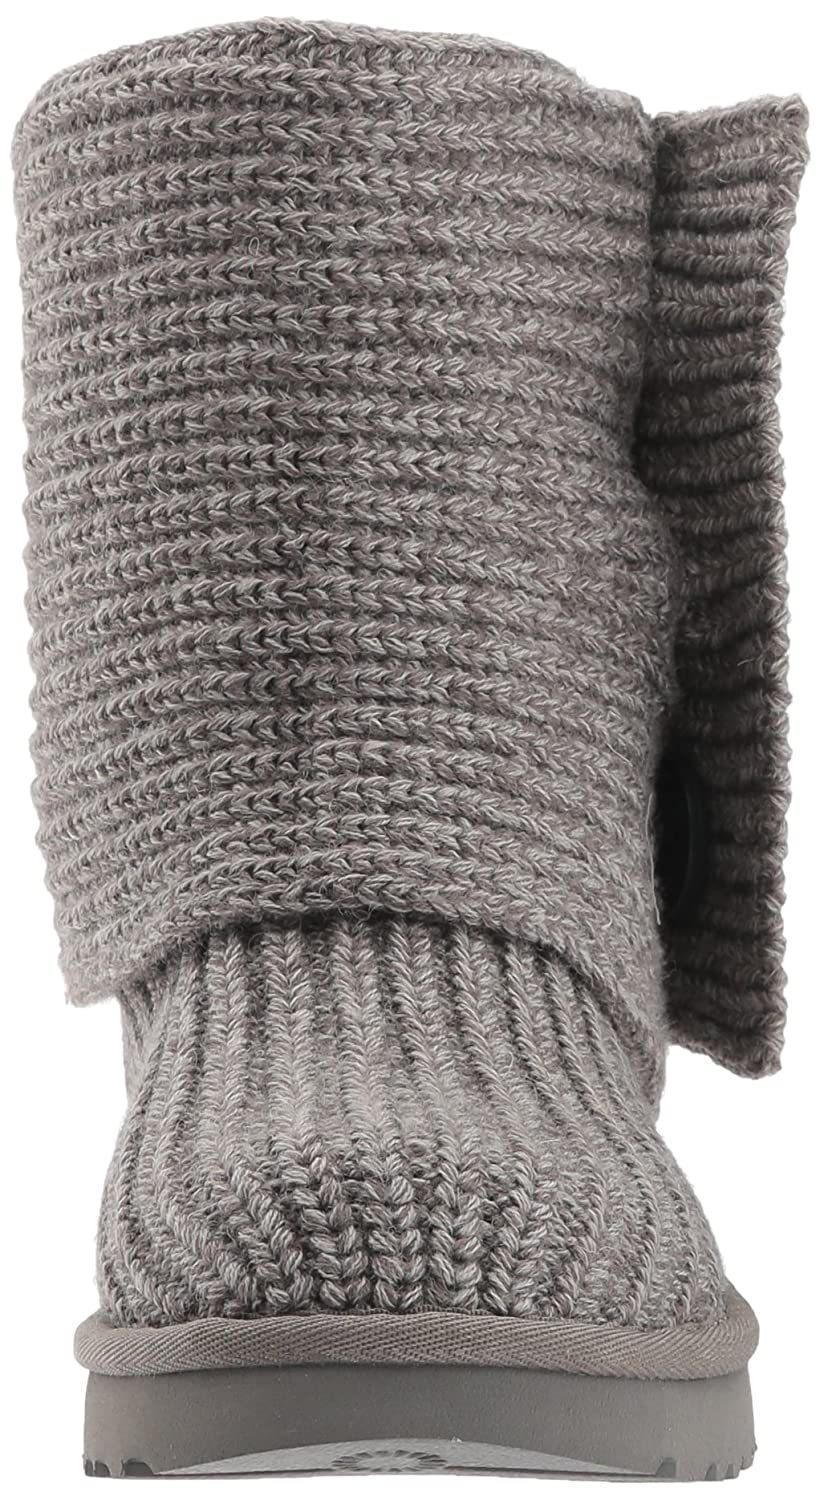 Details about UGG AUSTRALIA Classic Cardy Gray Sweater Knit